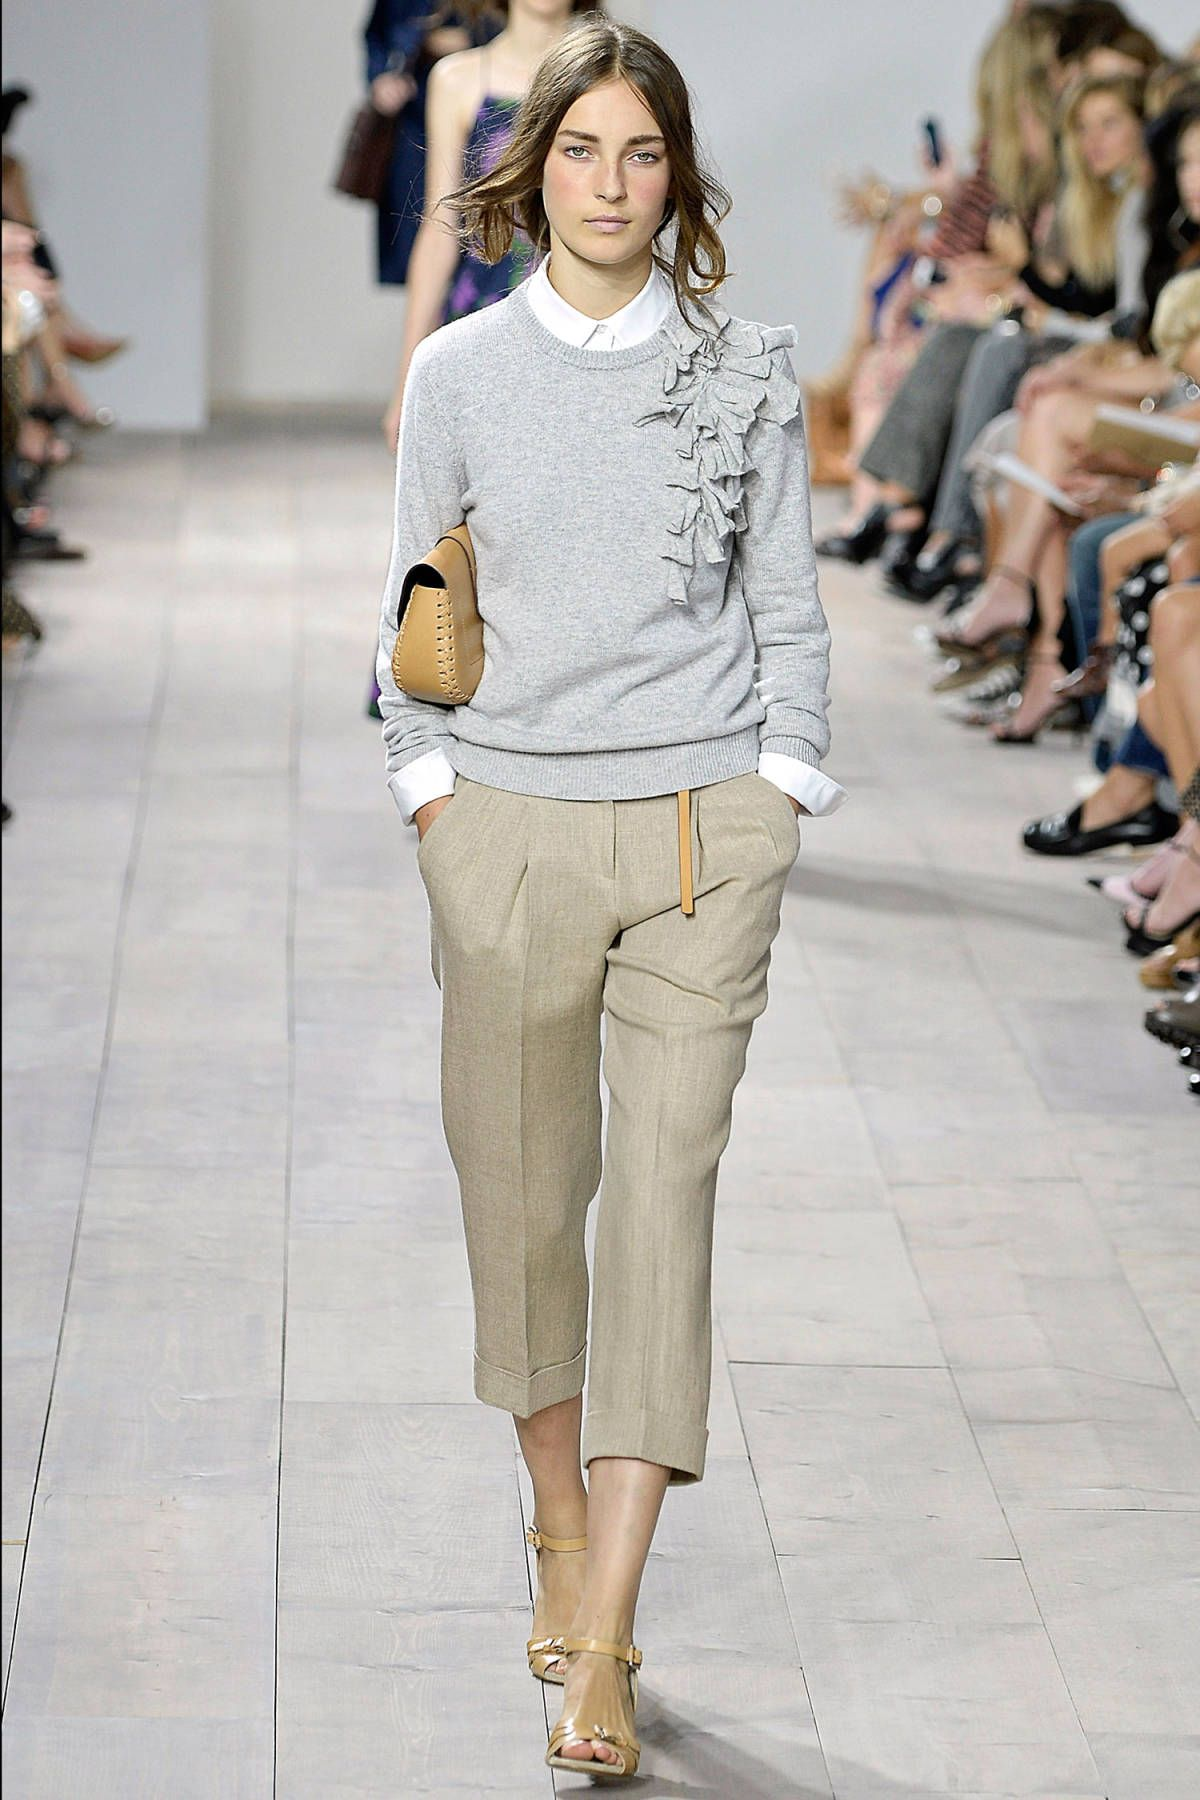 Easy, luxe and all American. Oh, and cheerful. Michael Kors is at his best when he serves up his classic, clean sportswear. His ethos? Life is short, so why all the tricks? Effortless dressing is where it's at.    - HarpersBAZAAR.com